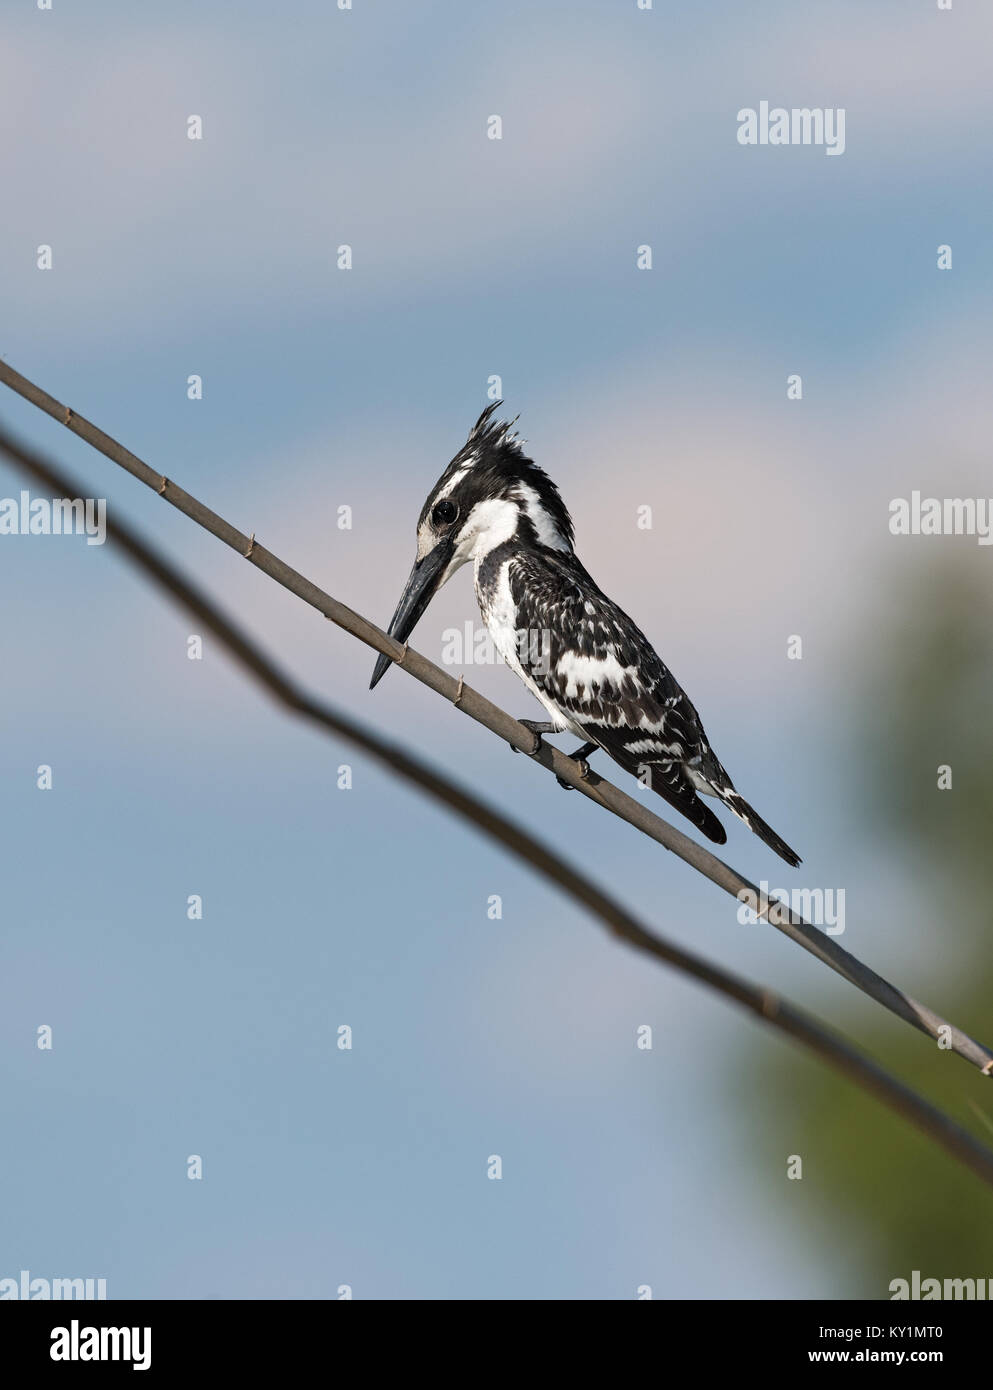 Pied Kingfisher (Ceryle rudis) sitting on a branch in Chobe National Park, Botswana - Stock Image